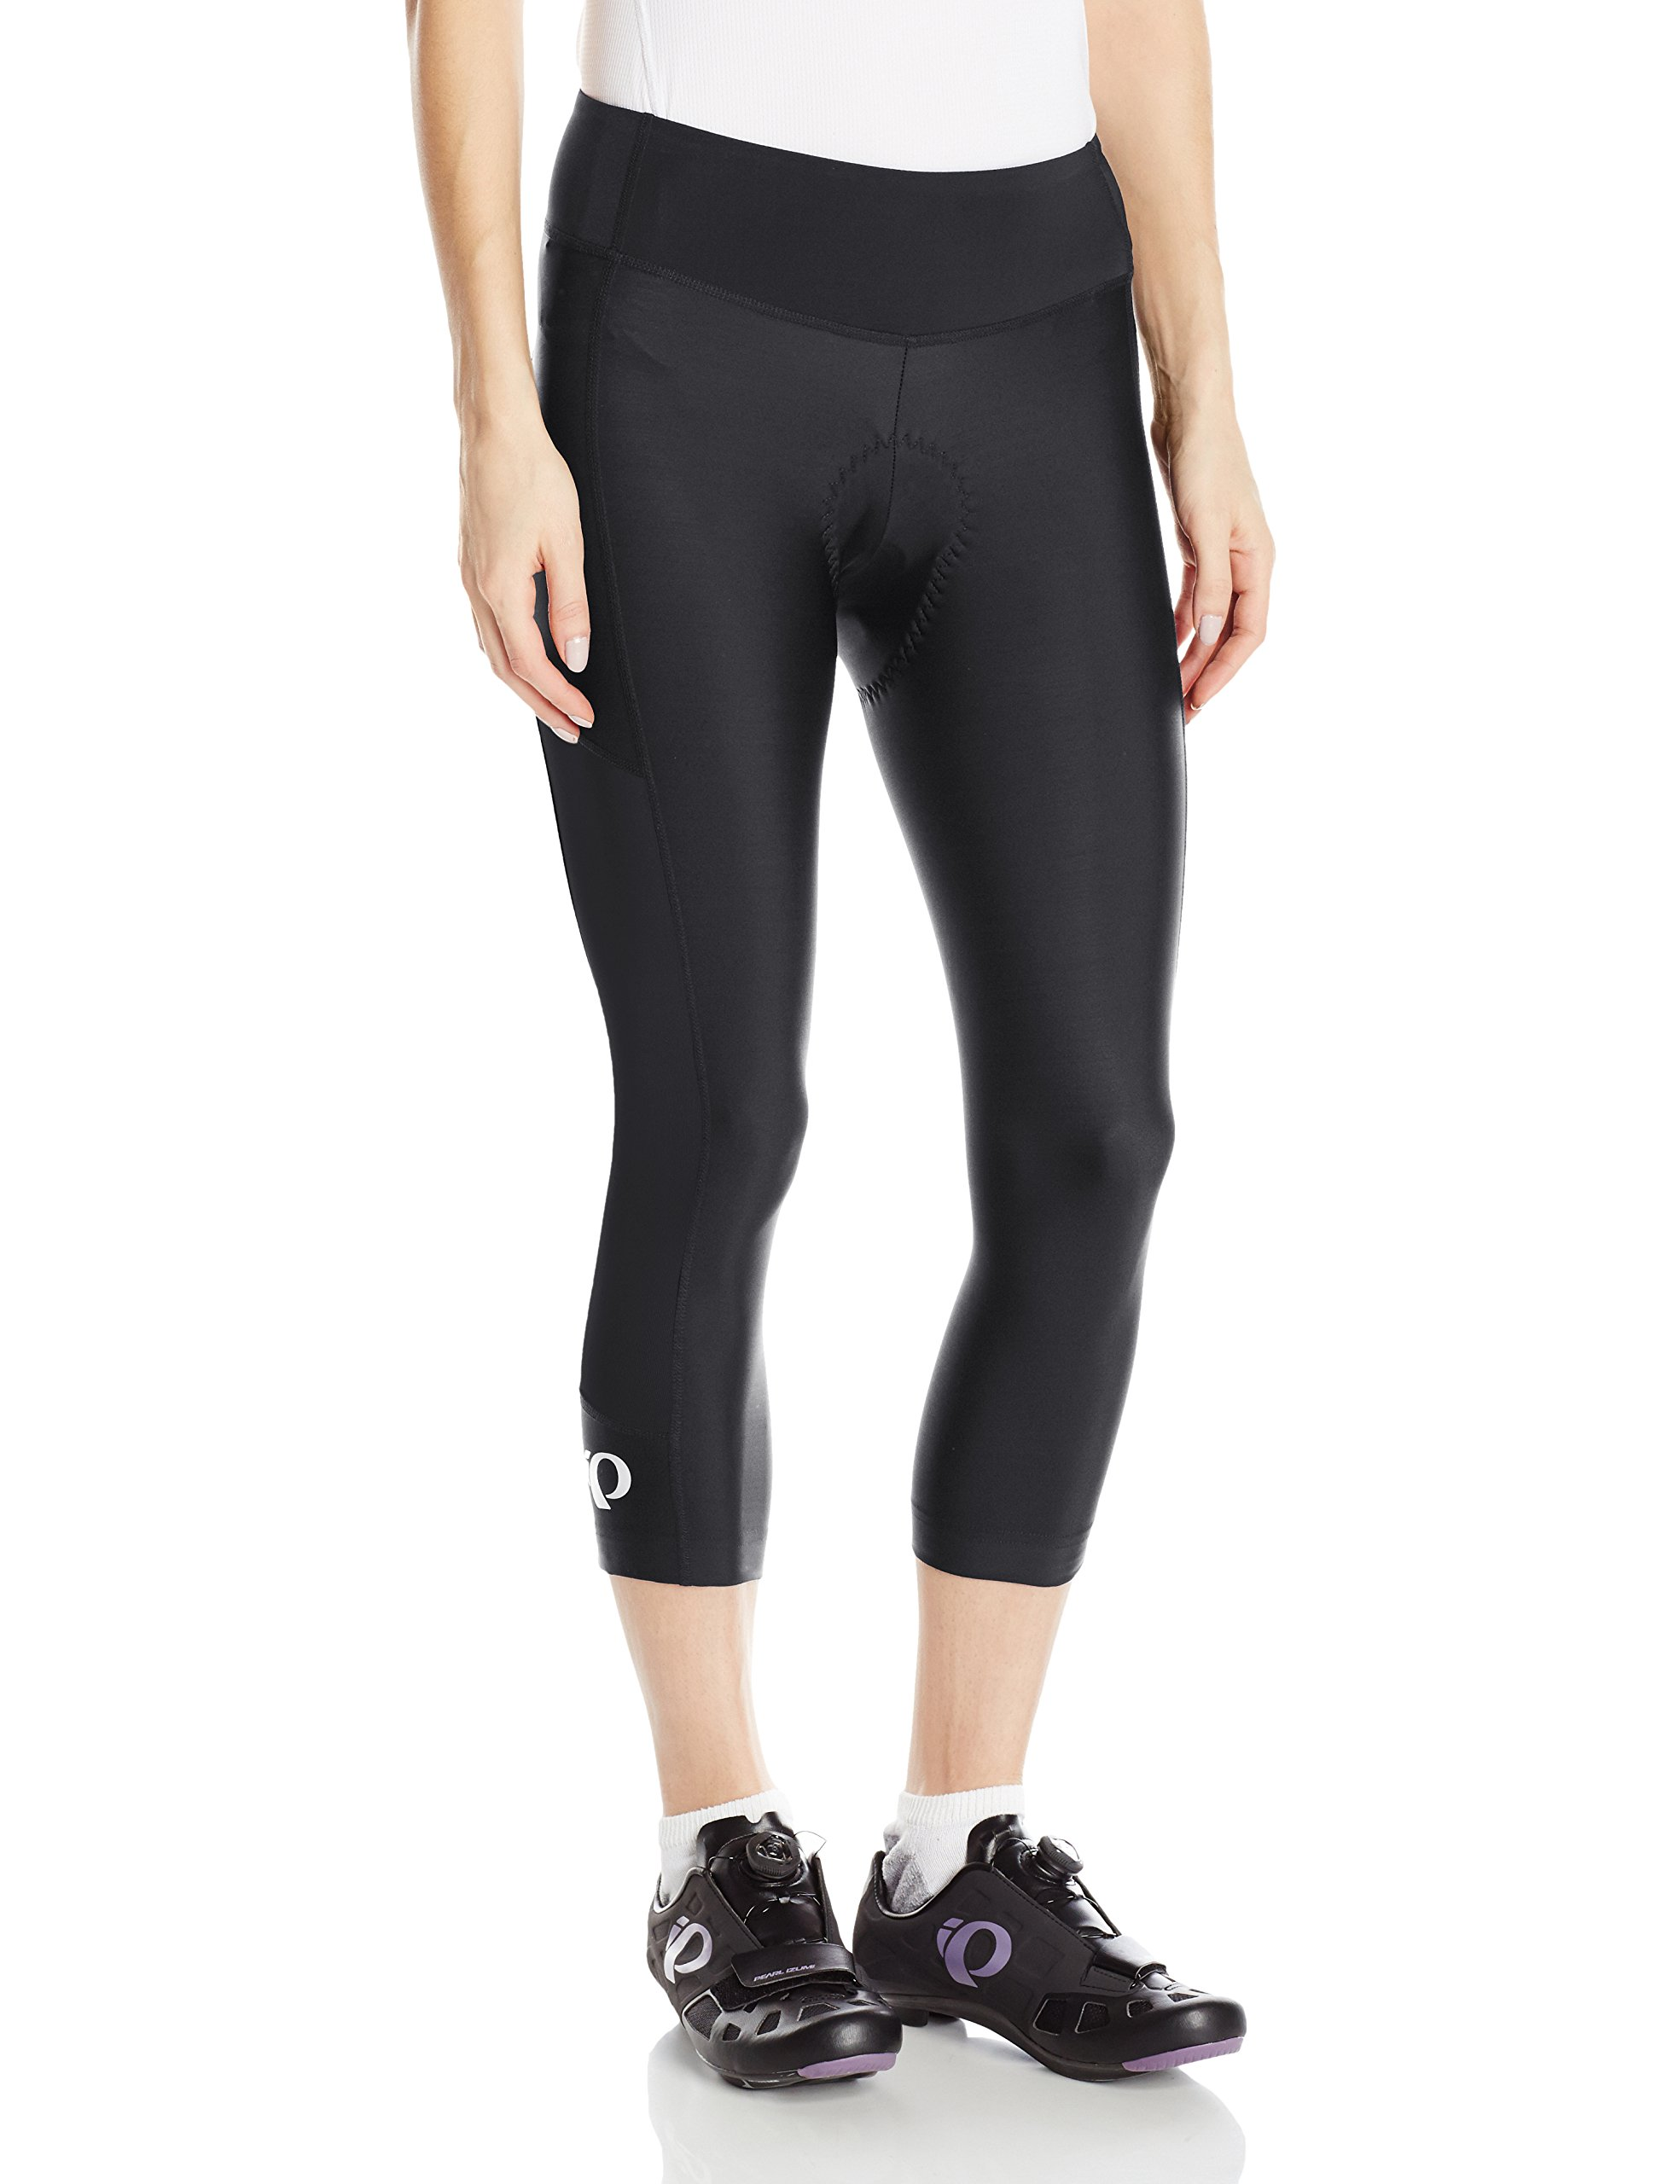 Pearl iZUMi Women's Escape Sugar CYC 3 Quarter Tights, Black/Black, X-Small